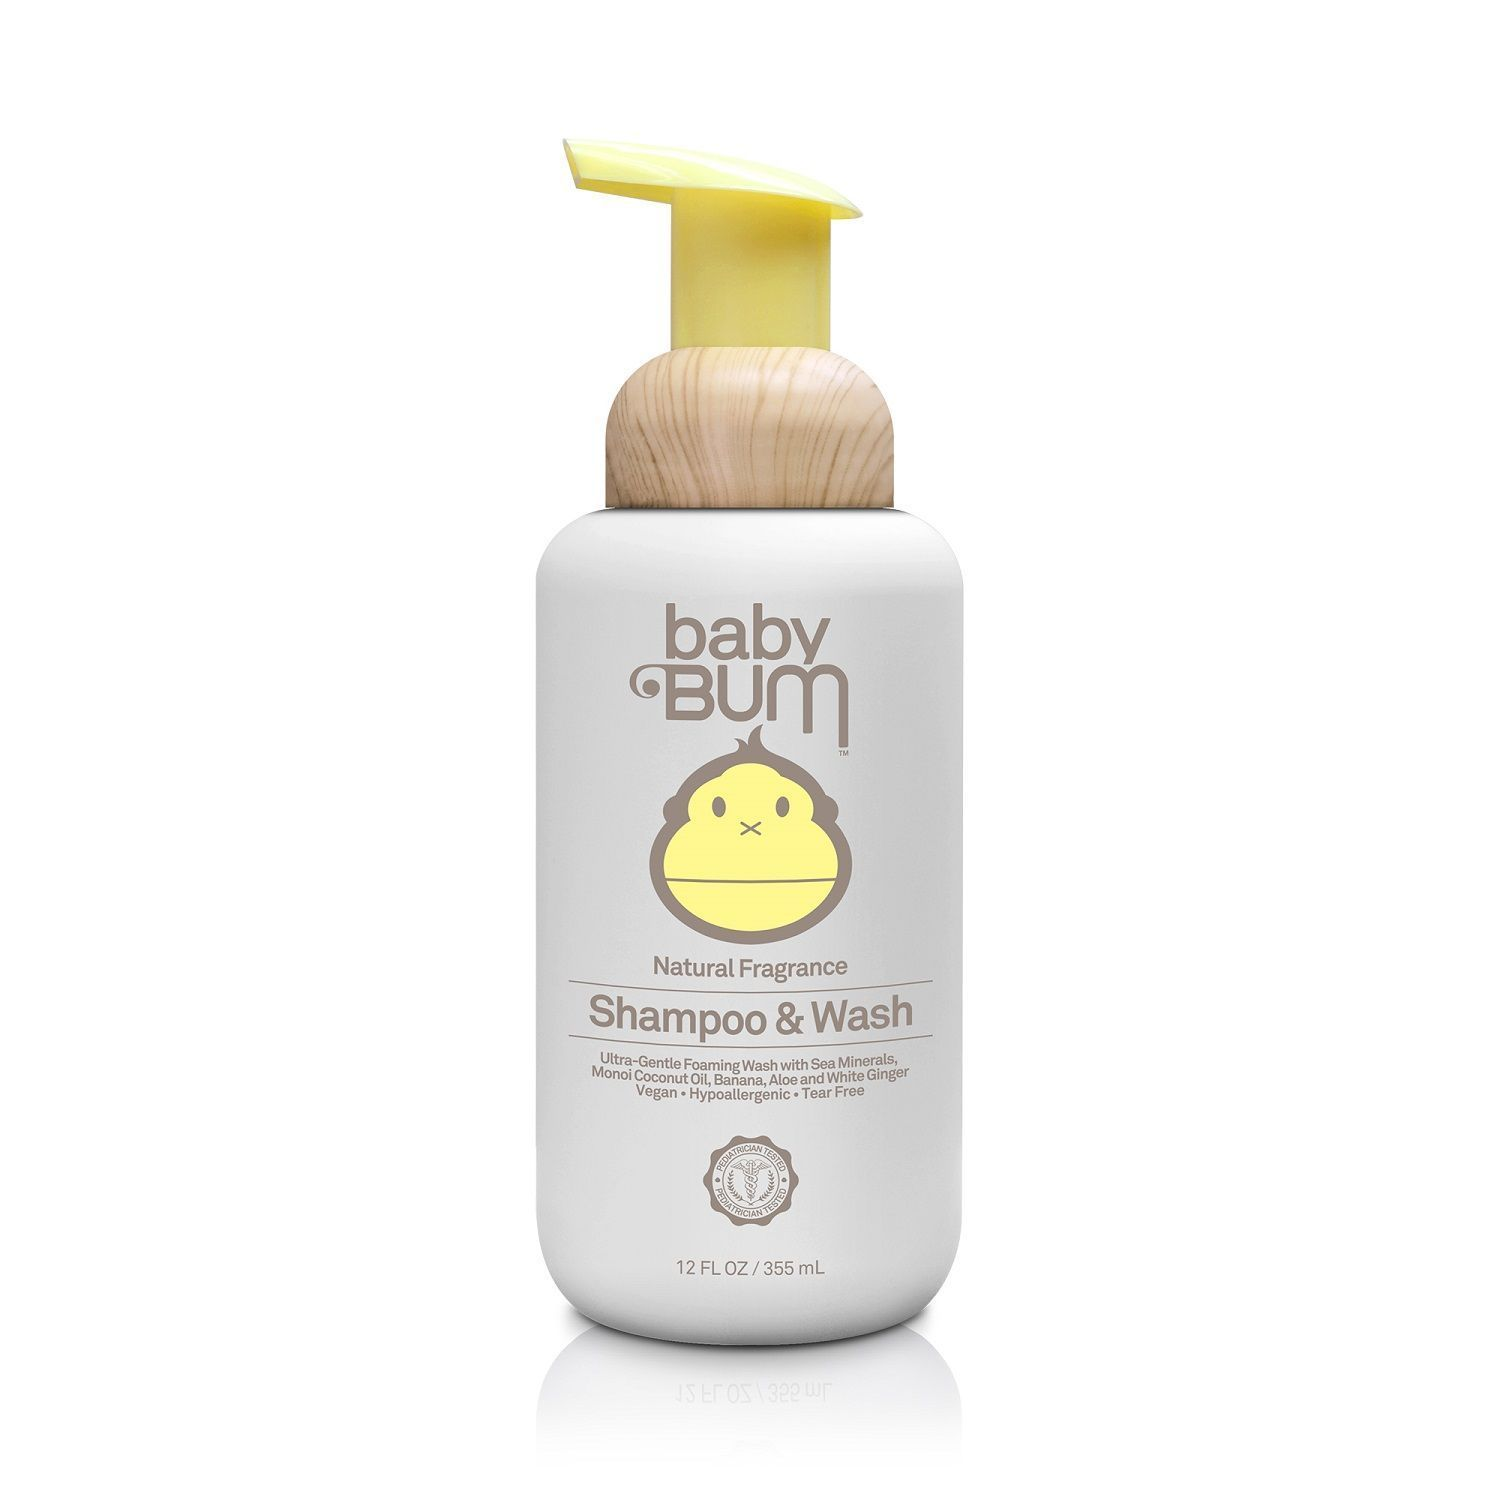 Baby Bum Shampoo & Wash - Natural Fragrance